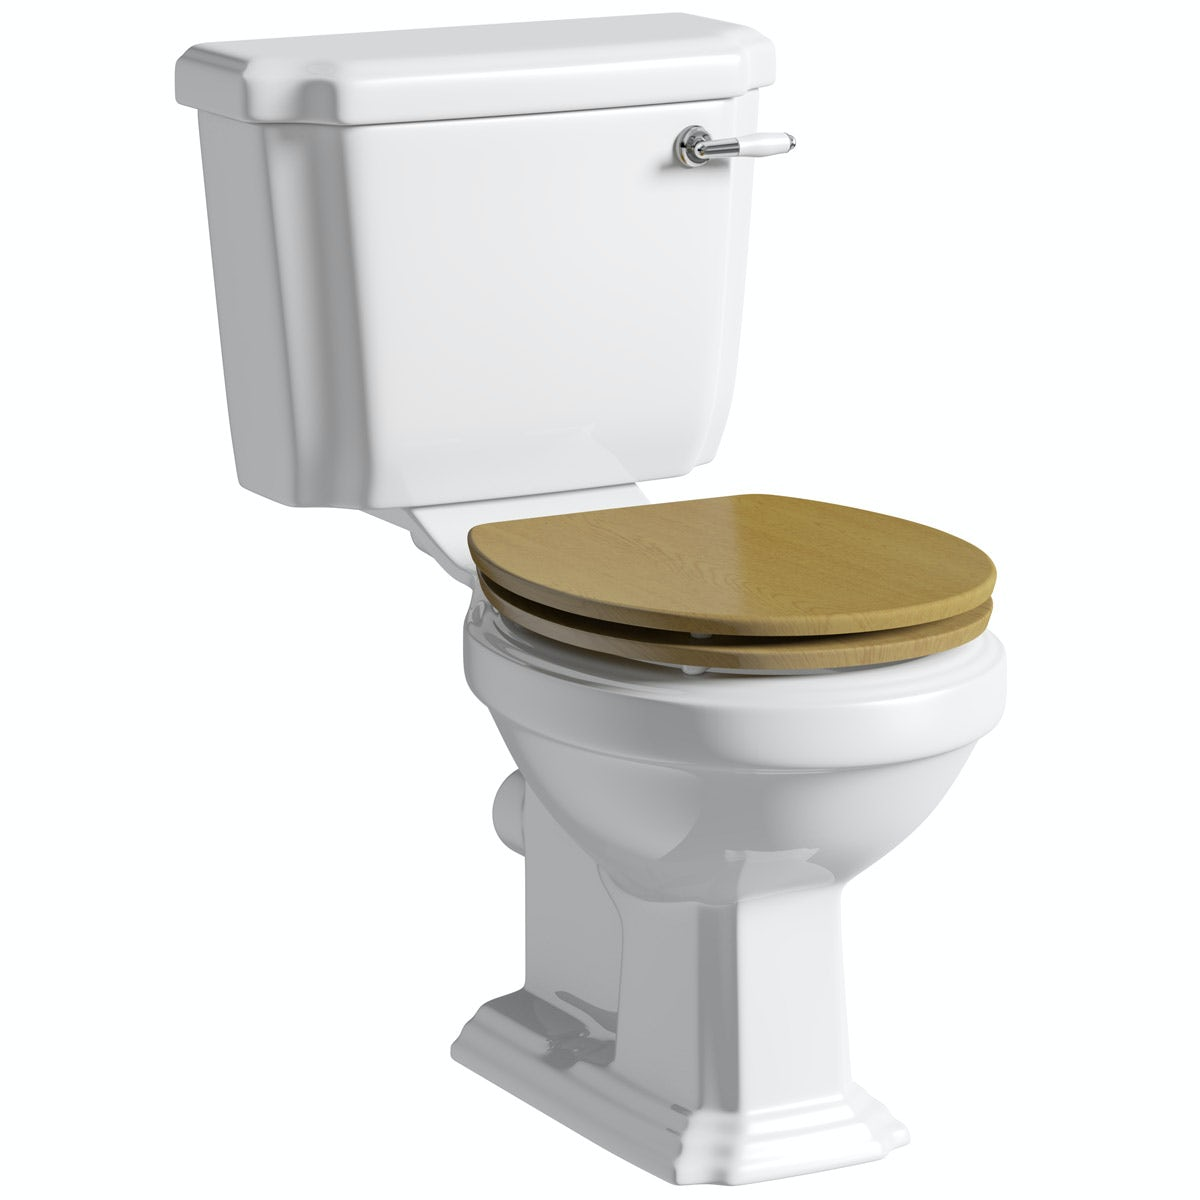 The Bath Co. Dulwich close coupled toilet with wooden toilet seat oak effect with pan connector